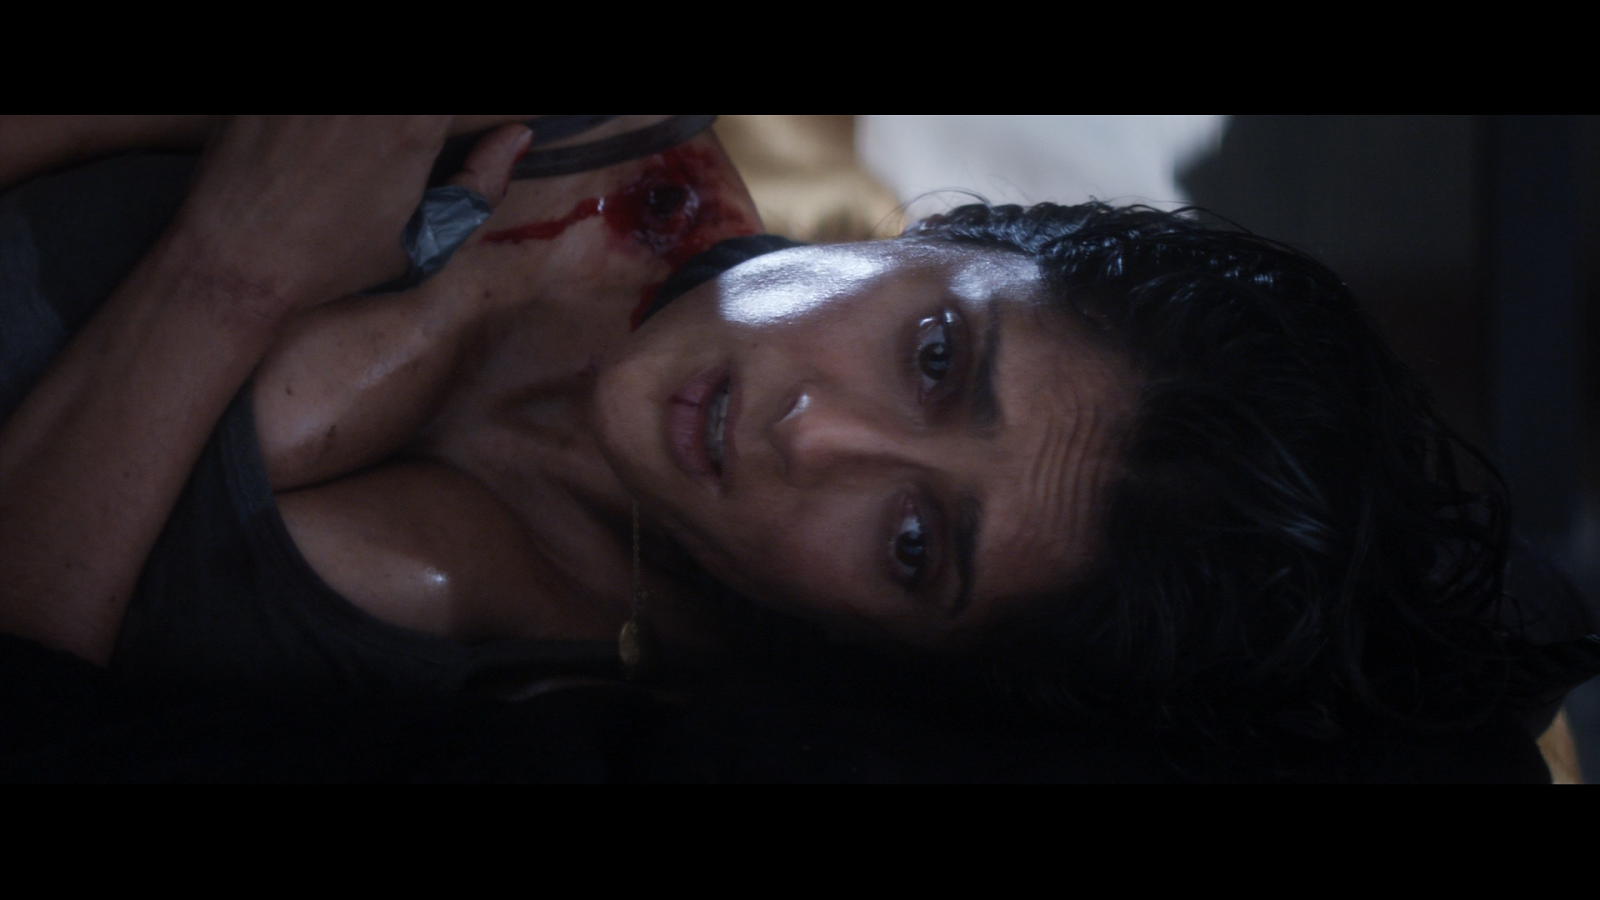 Everly (2014) 1080p BD25 6